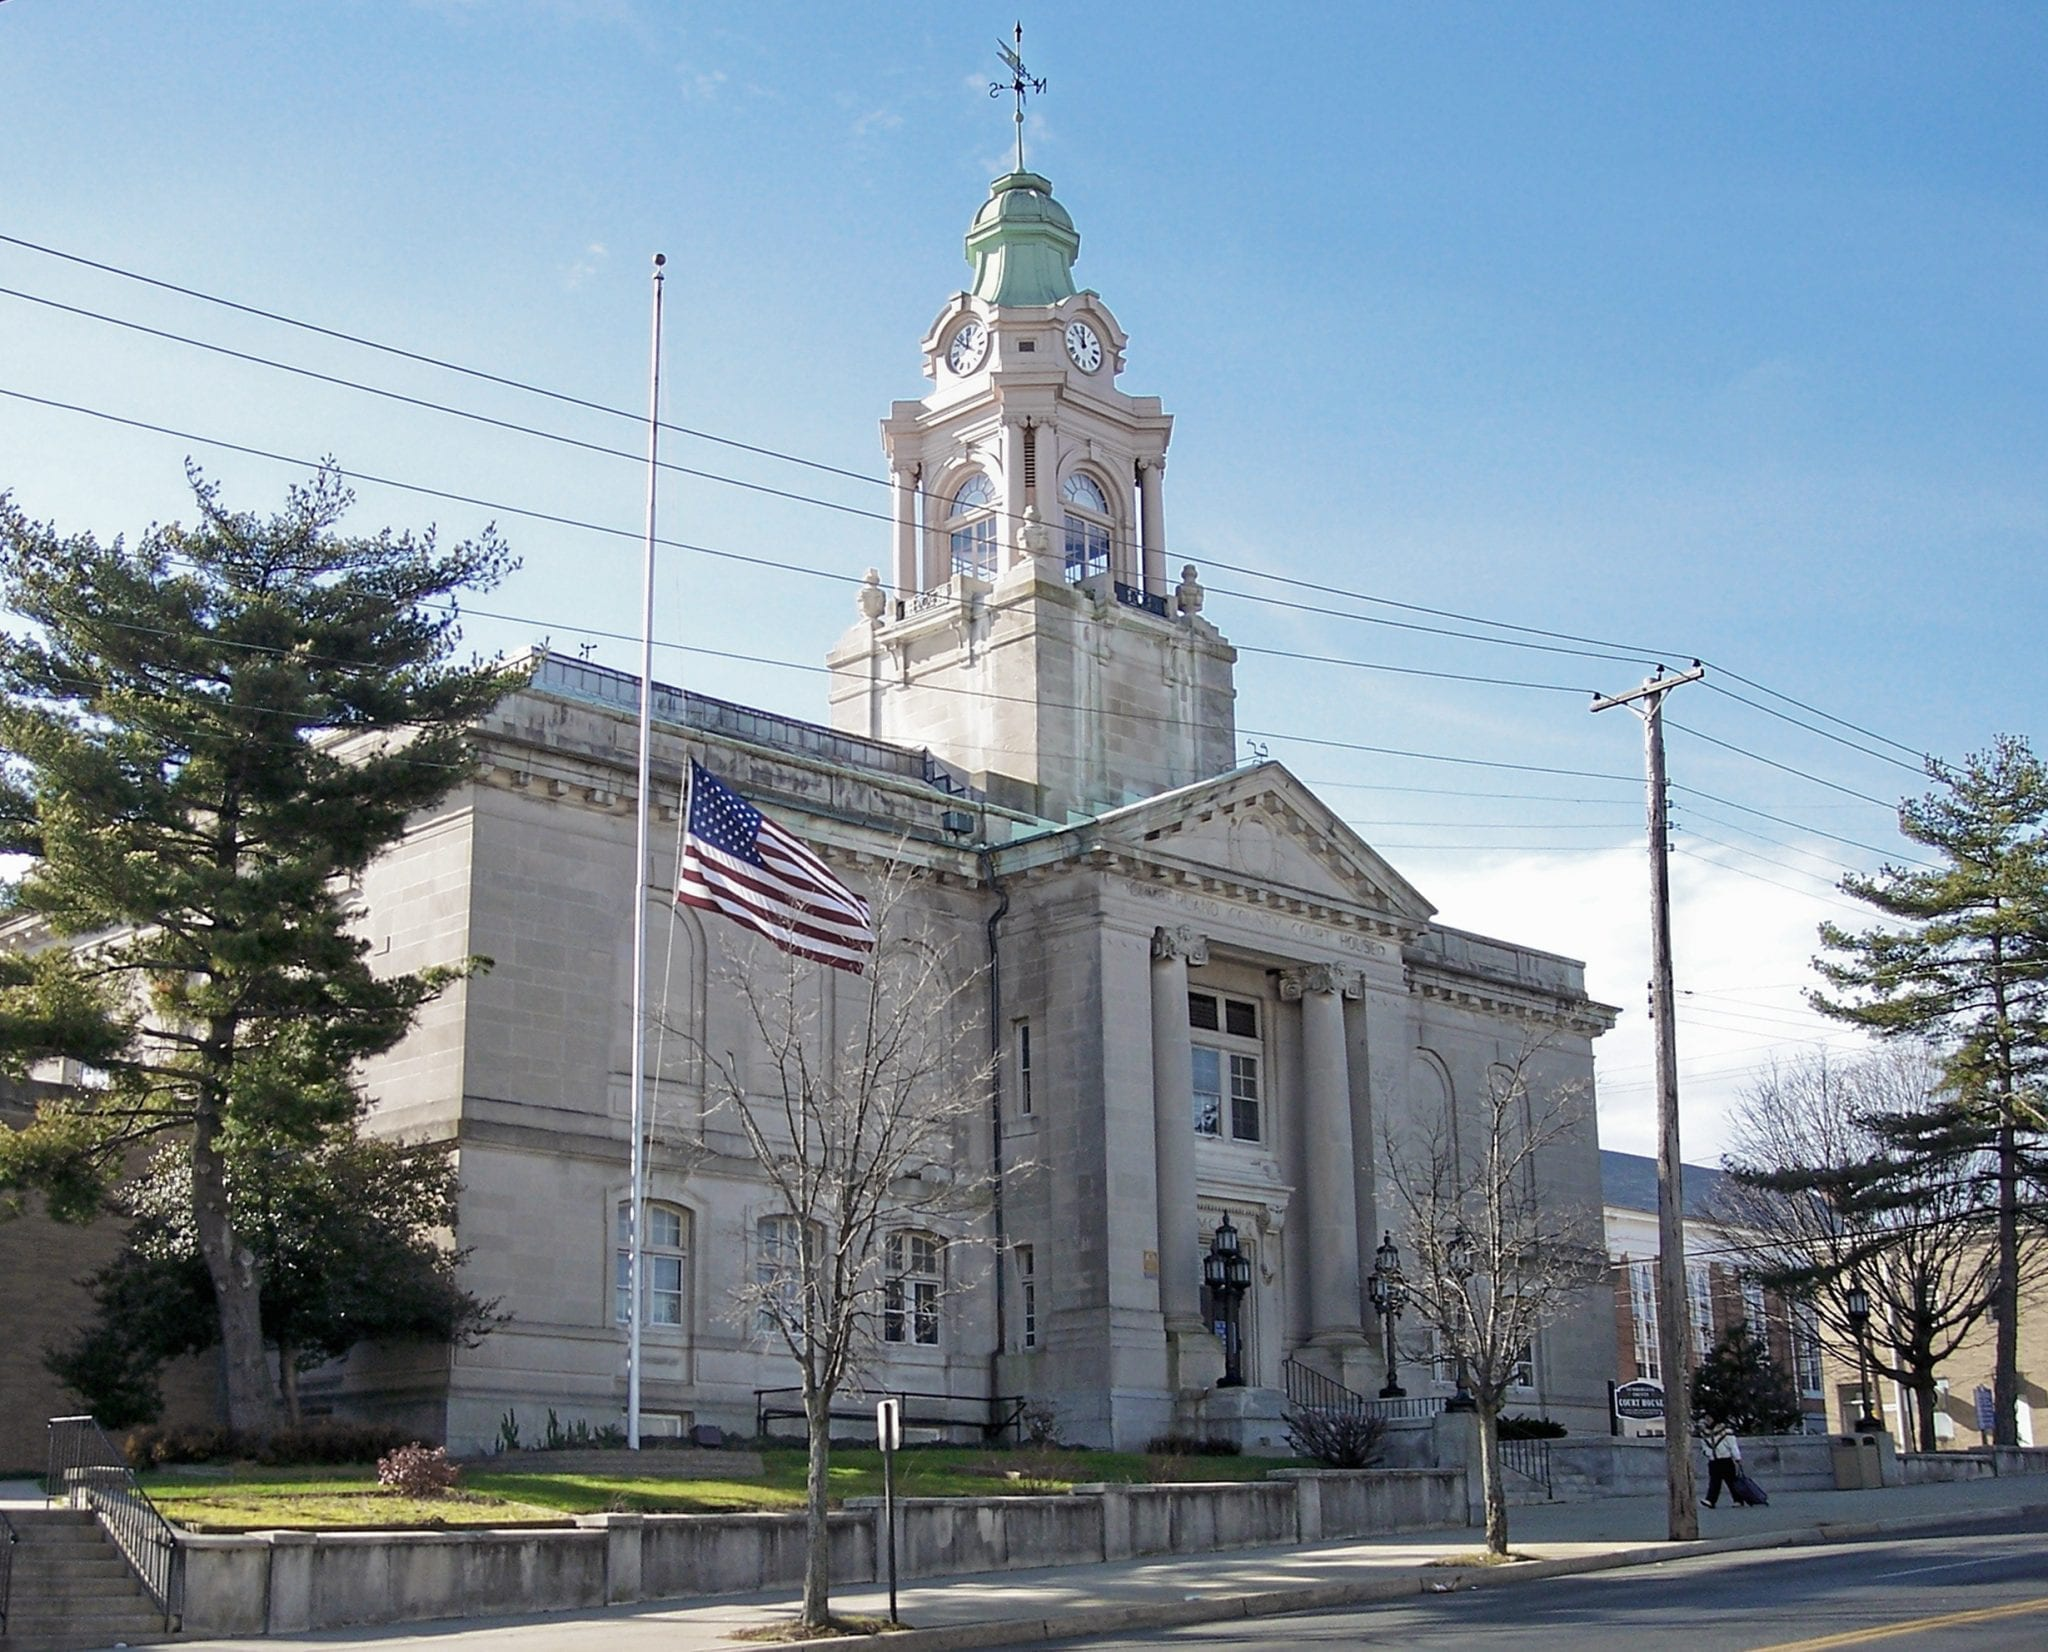 Image of the Cumberland County Courthouse in Bridgeton, New Jersey